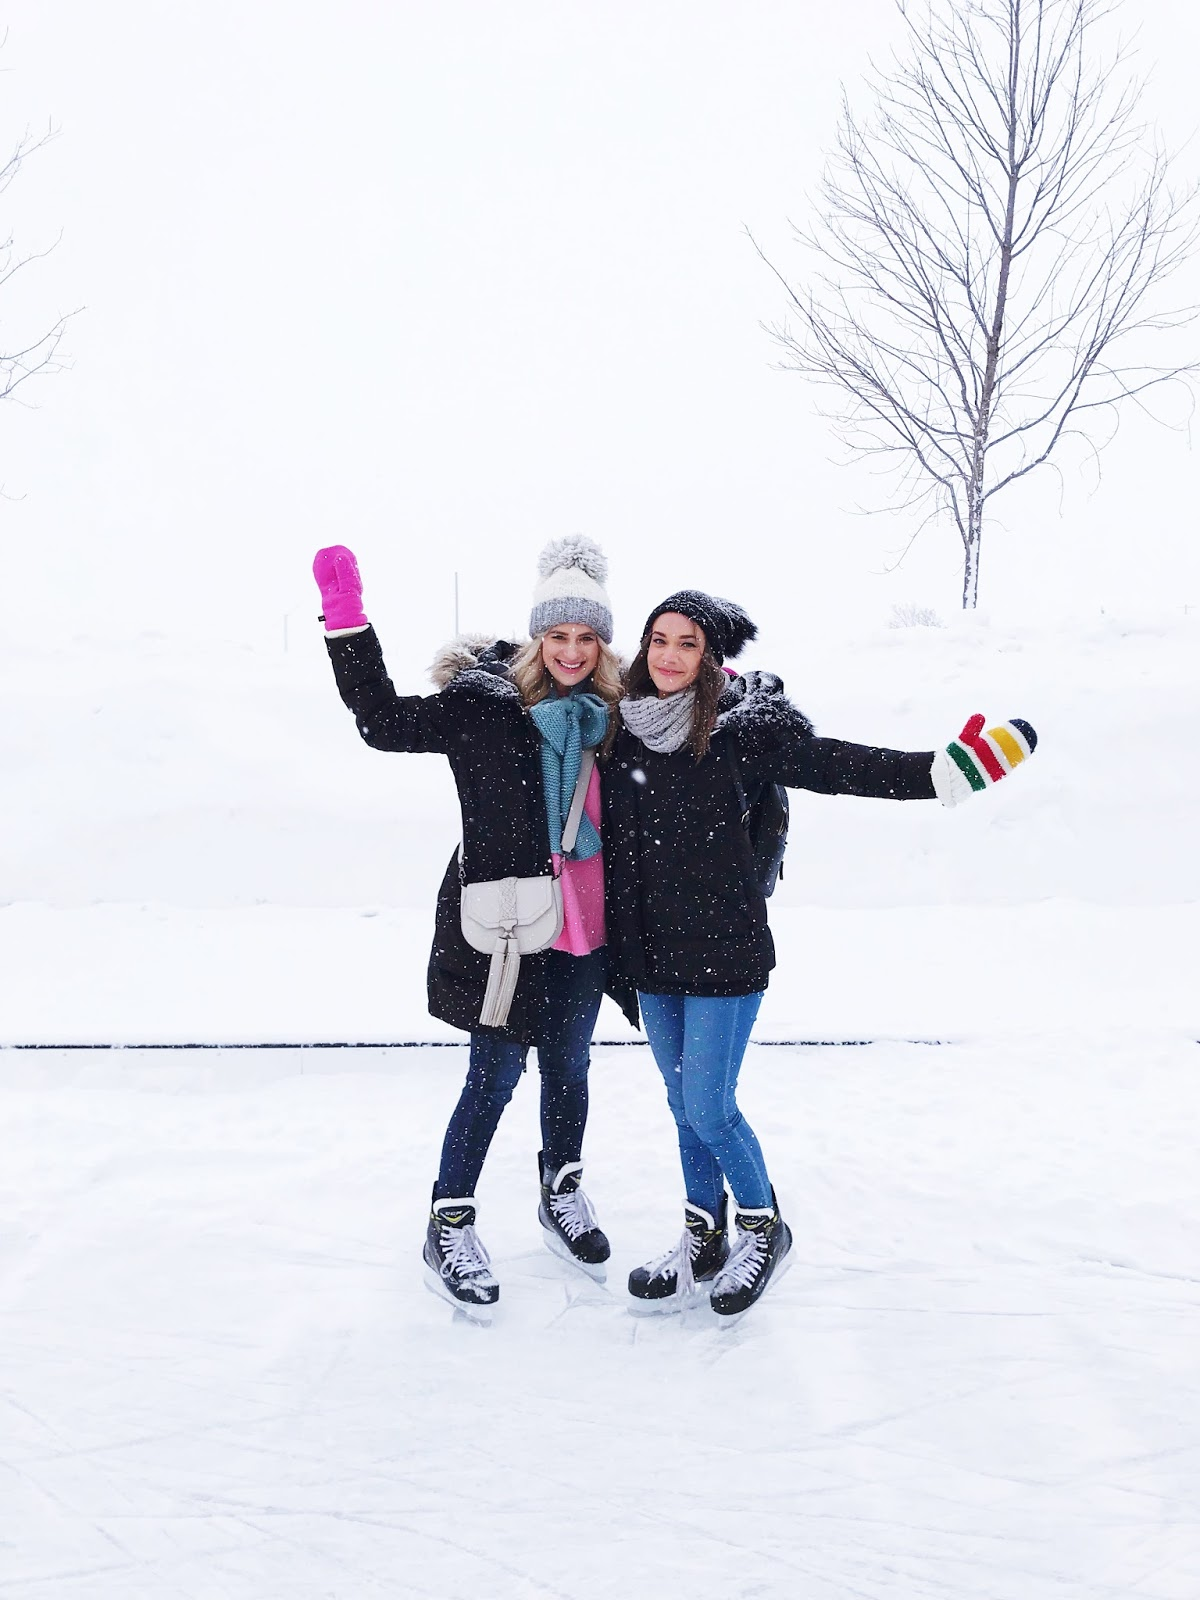 Bijuleni | How To Unwind at White Oaks Resort & Spa, Niagara on the Lake | Girls Weekend Getaway| Skating in style